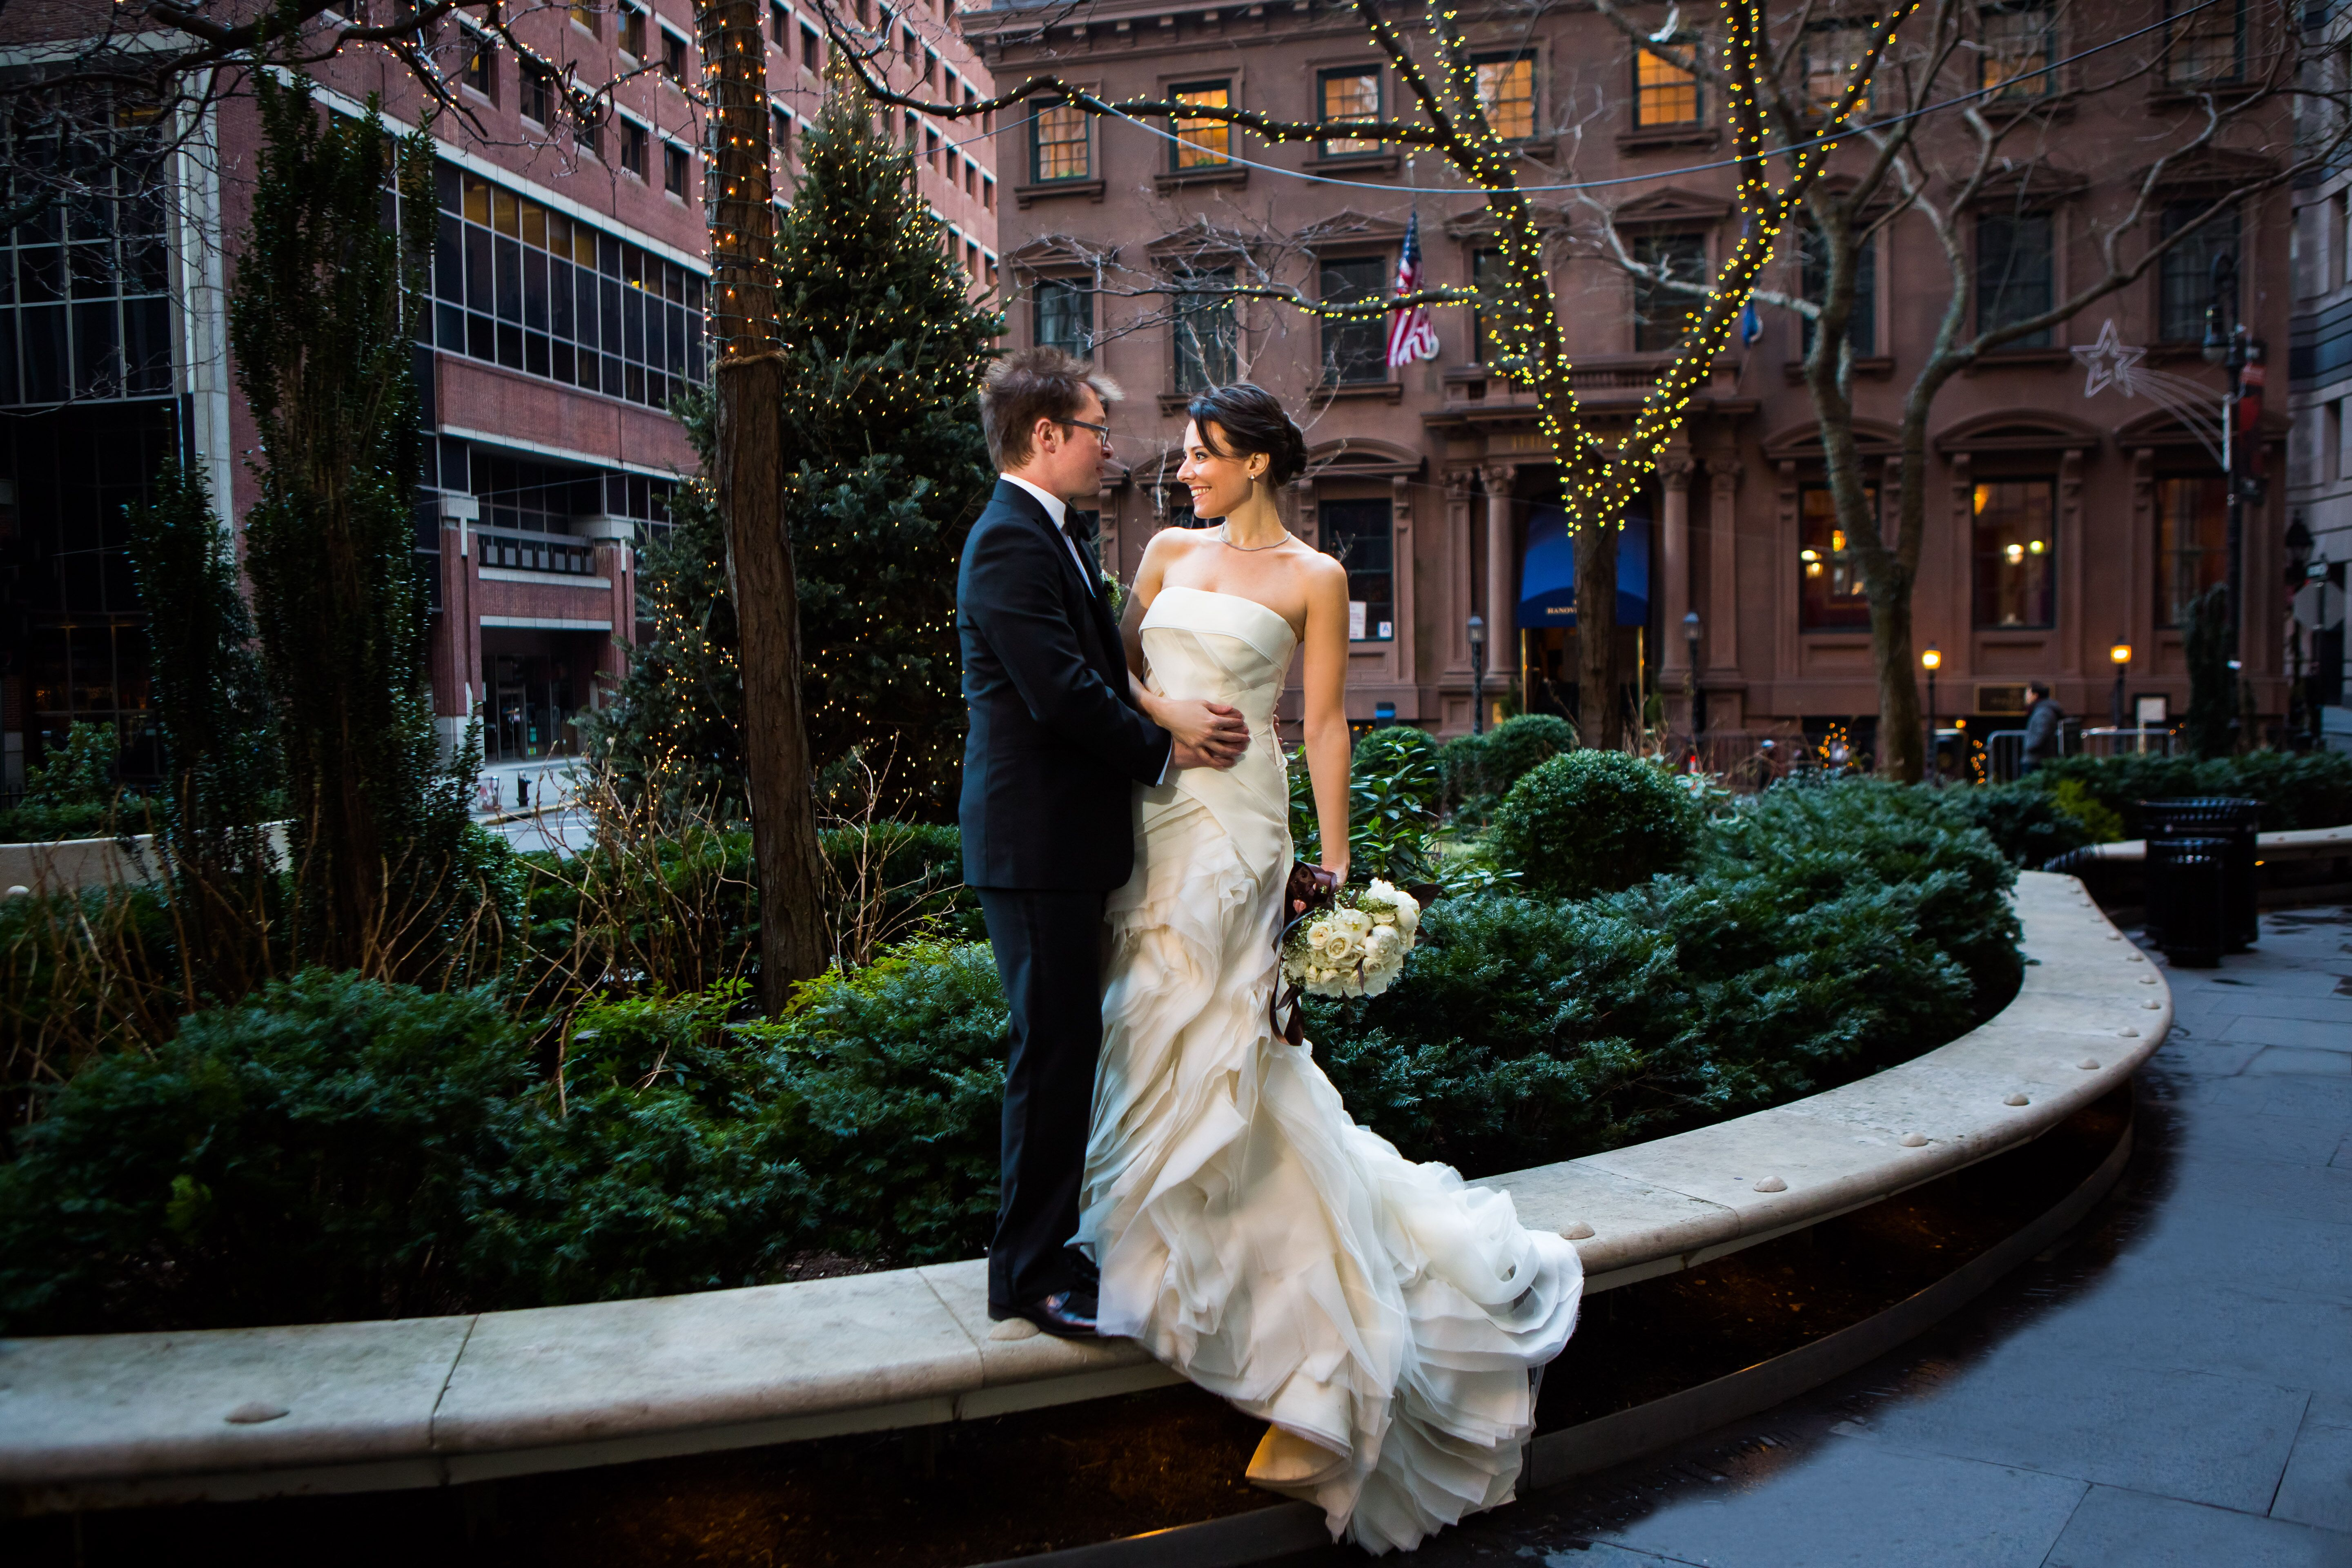 Wedding reception venues in new york ny the knot 1 hanover square junglespirit Choice Image